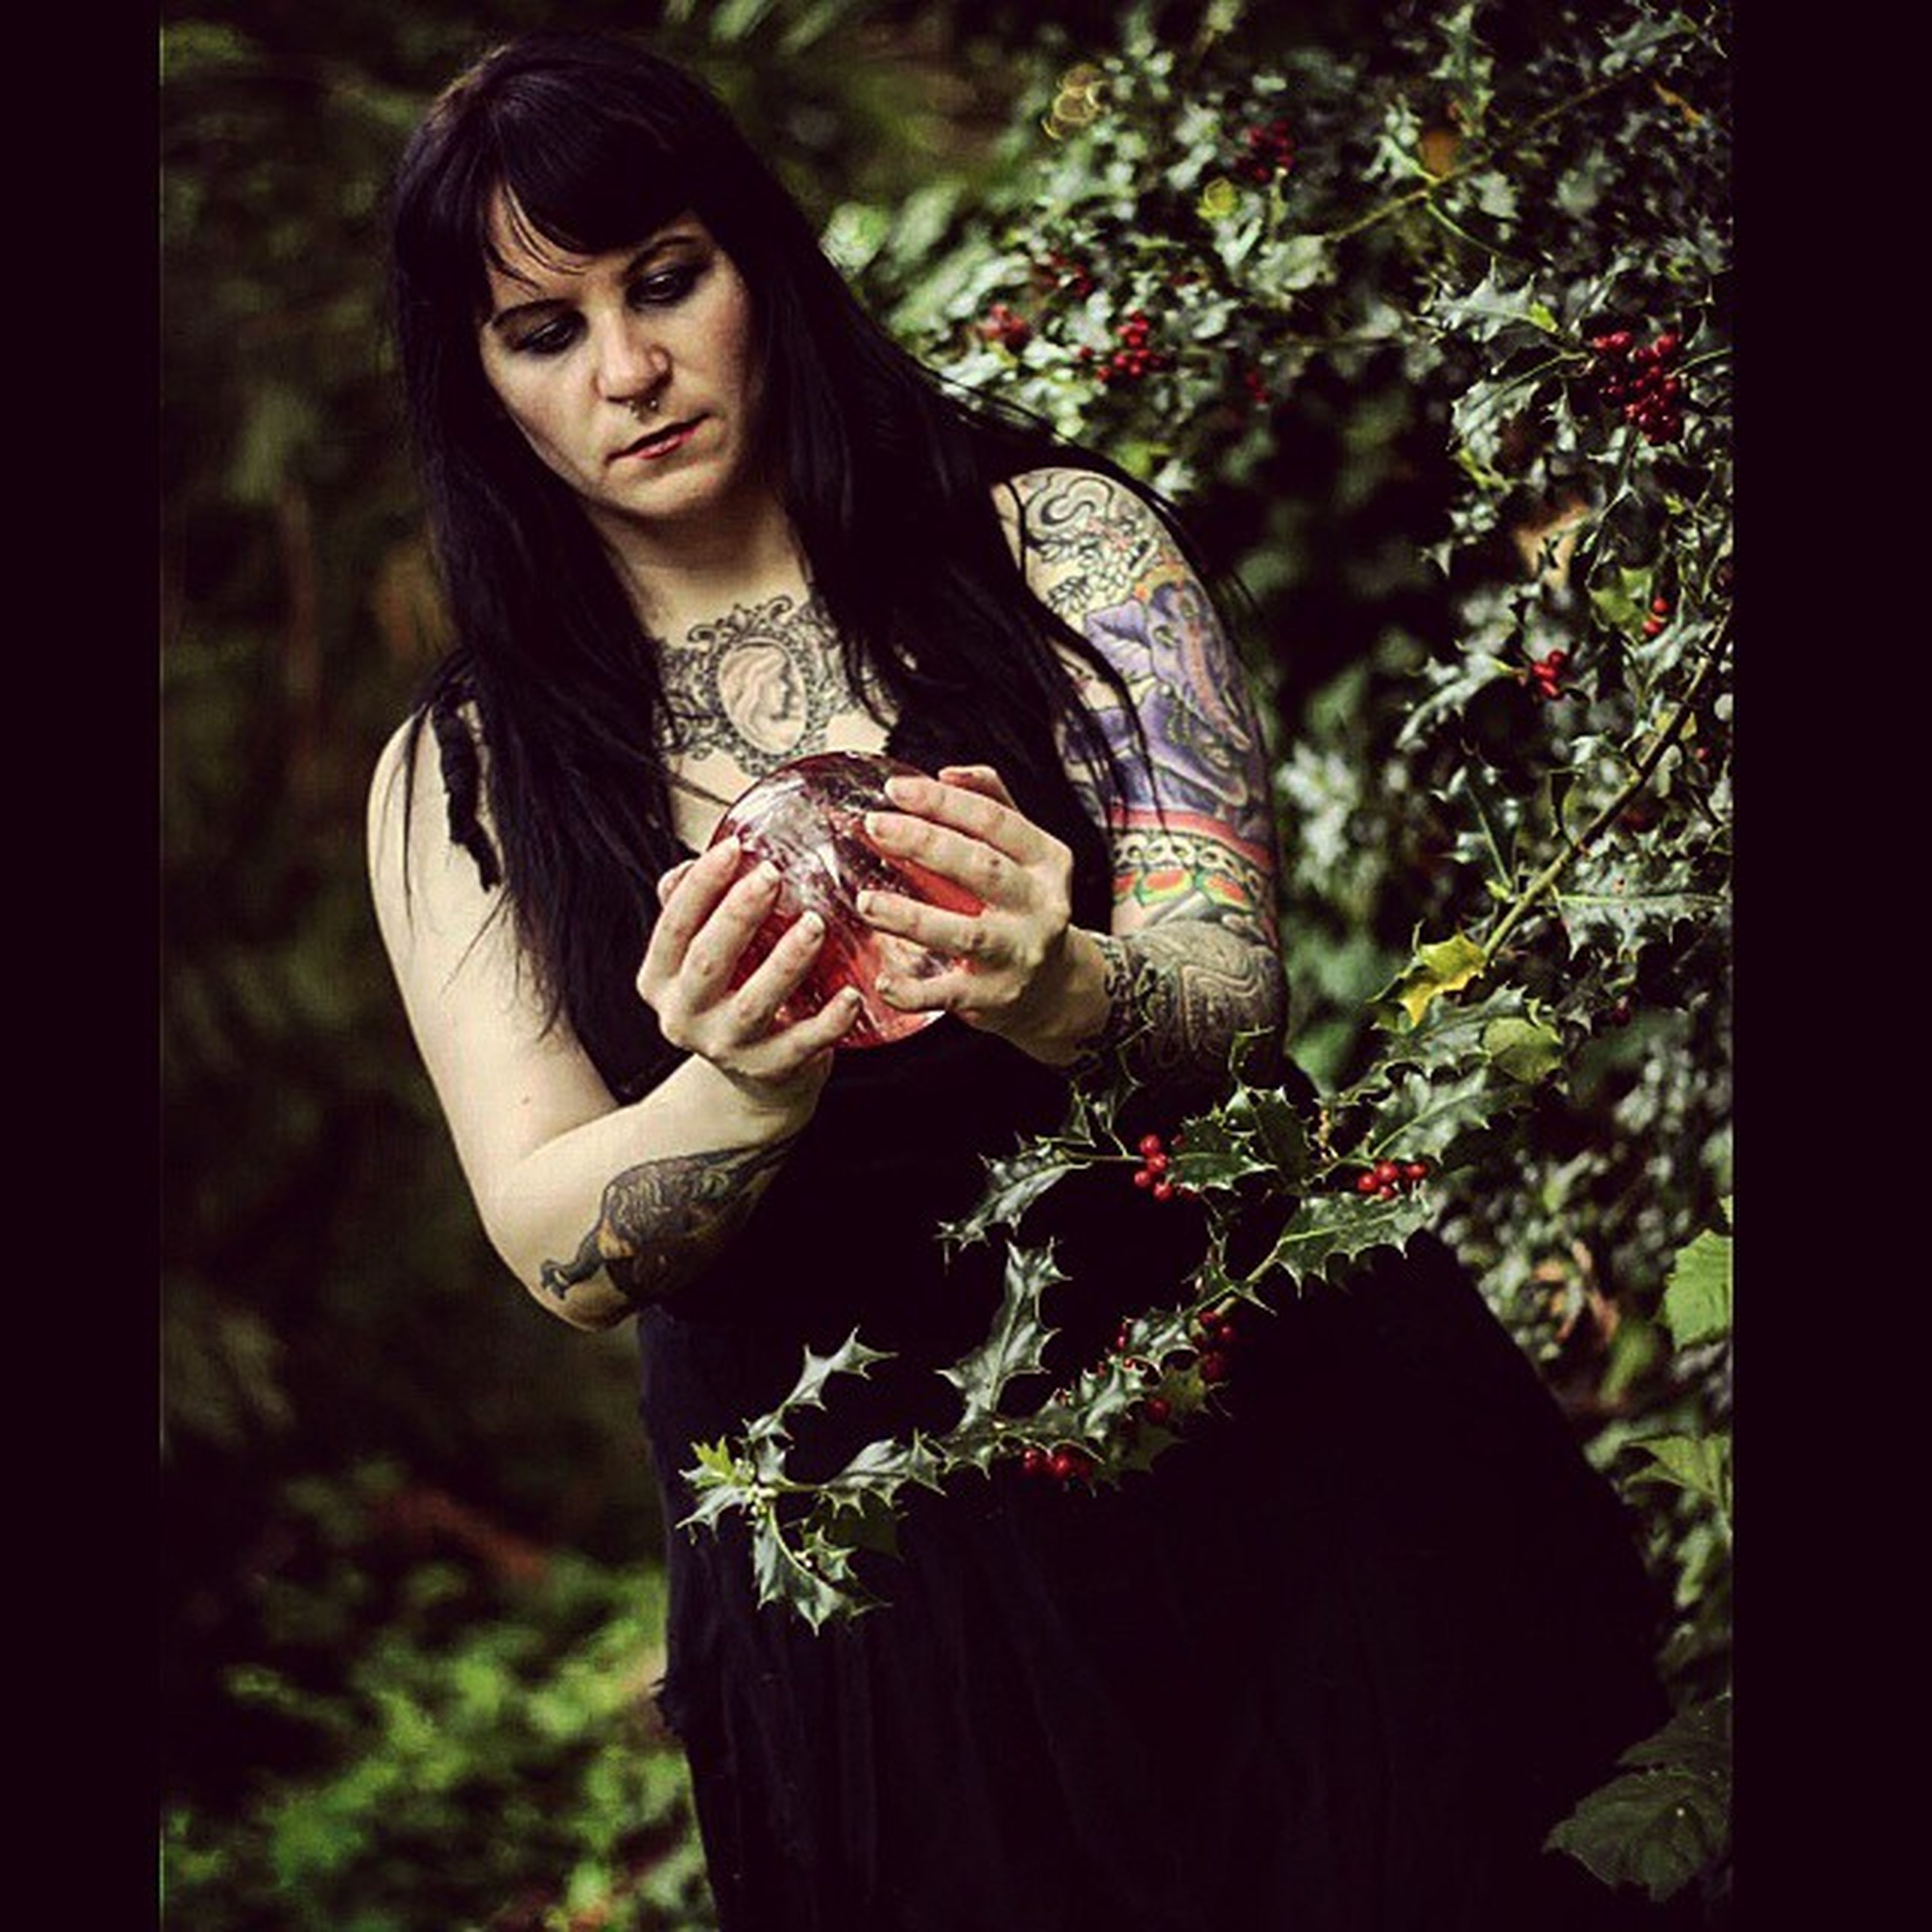 One of the pictures that I took on a shoot for SirensRain Funshoot Crystalball Leadsinger Tattoos Metal MetalBand ShootWithSomeoneSpecial Canon Rebel T5i Moretocome 😈